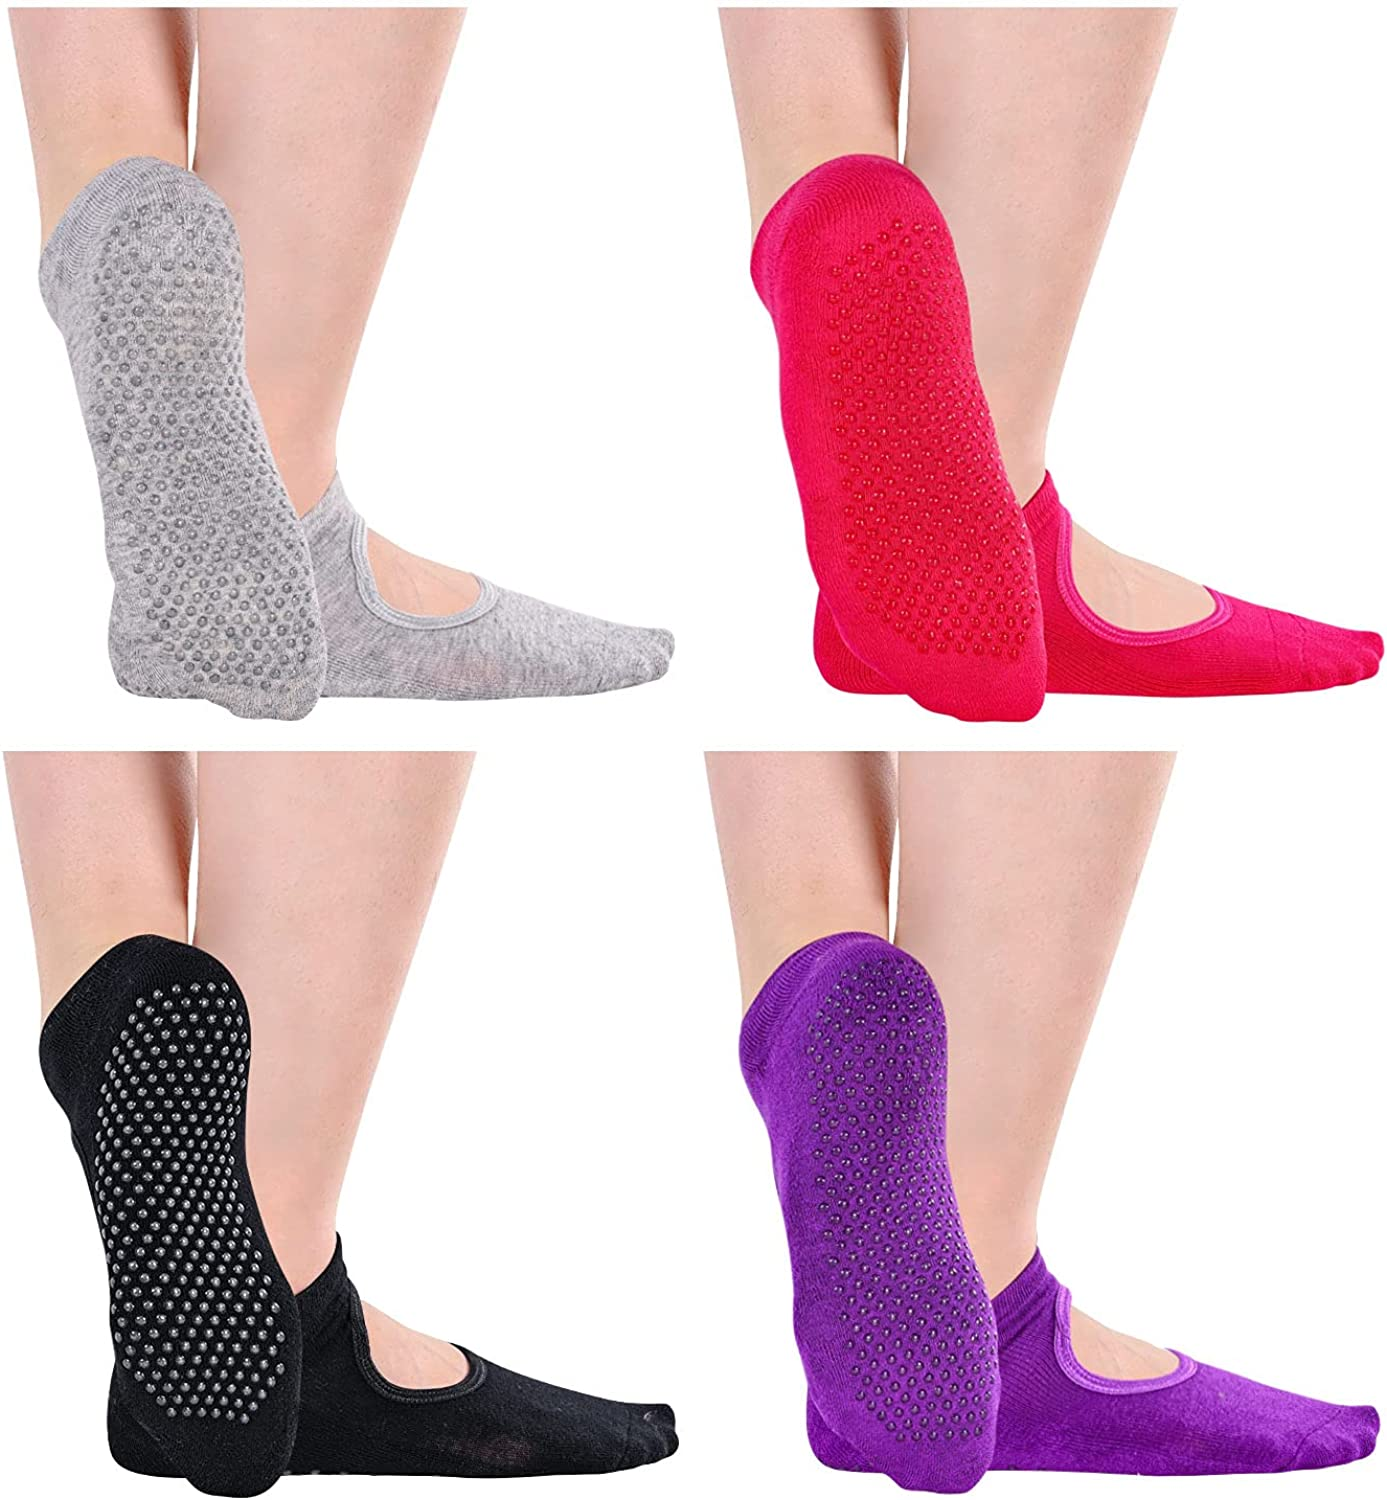 SOCKFUN Safety and trust Yoga Socks with Grips for Pilates Women Dance Ball Barre Cheap super special price